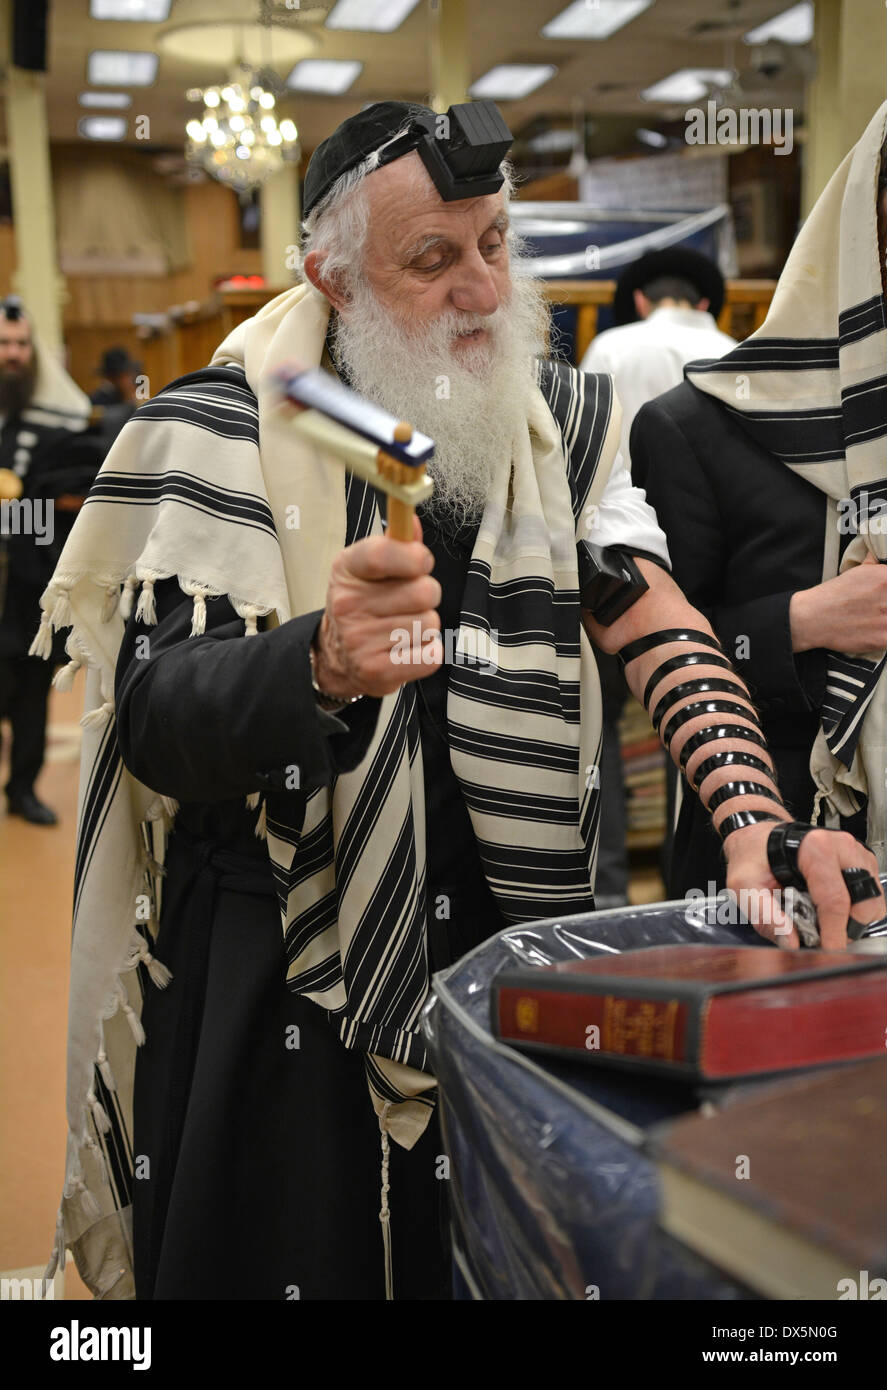 A religious Jewish man turning his noisemaker grogger at the mention of Haman during the reading of the Megillah on Purim in NYC - Stock Image